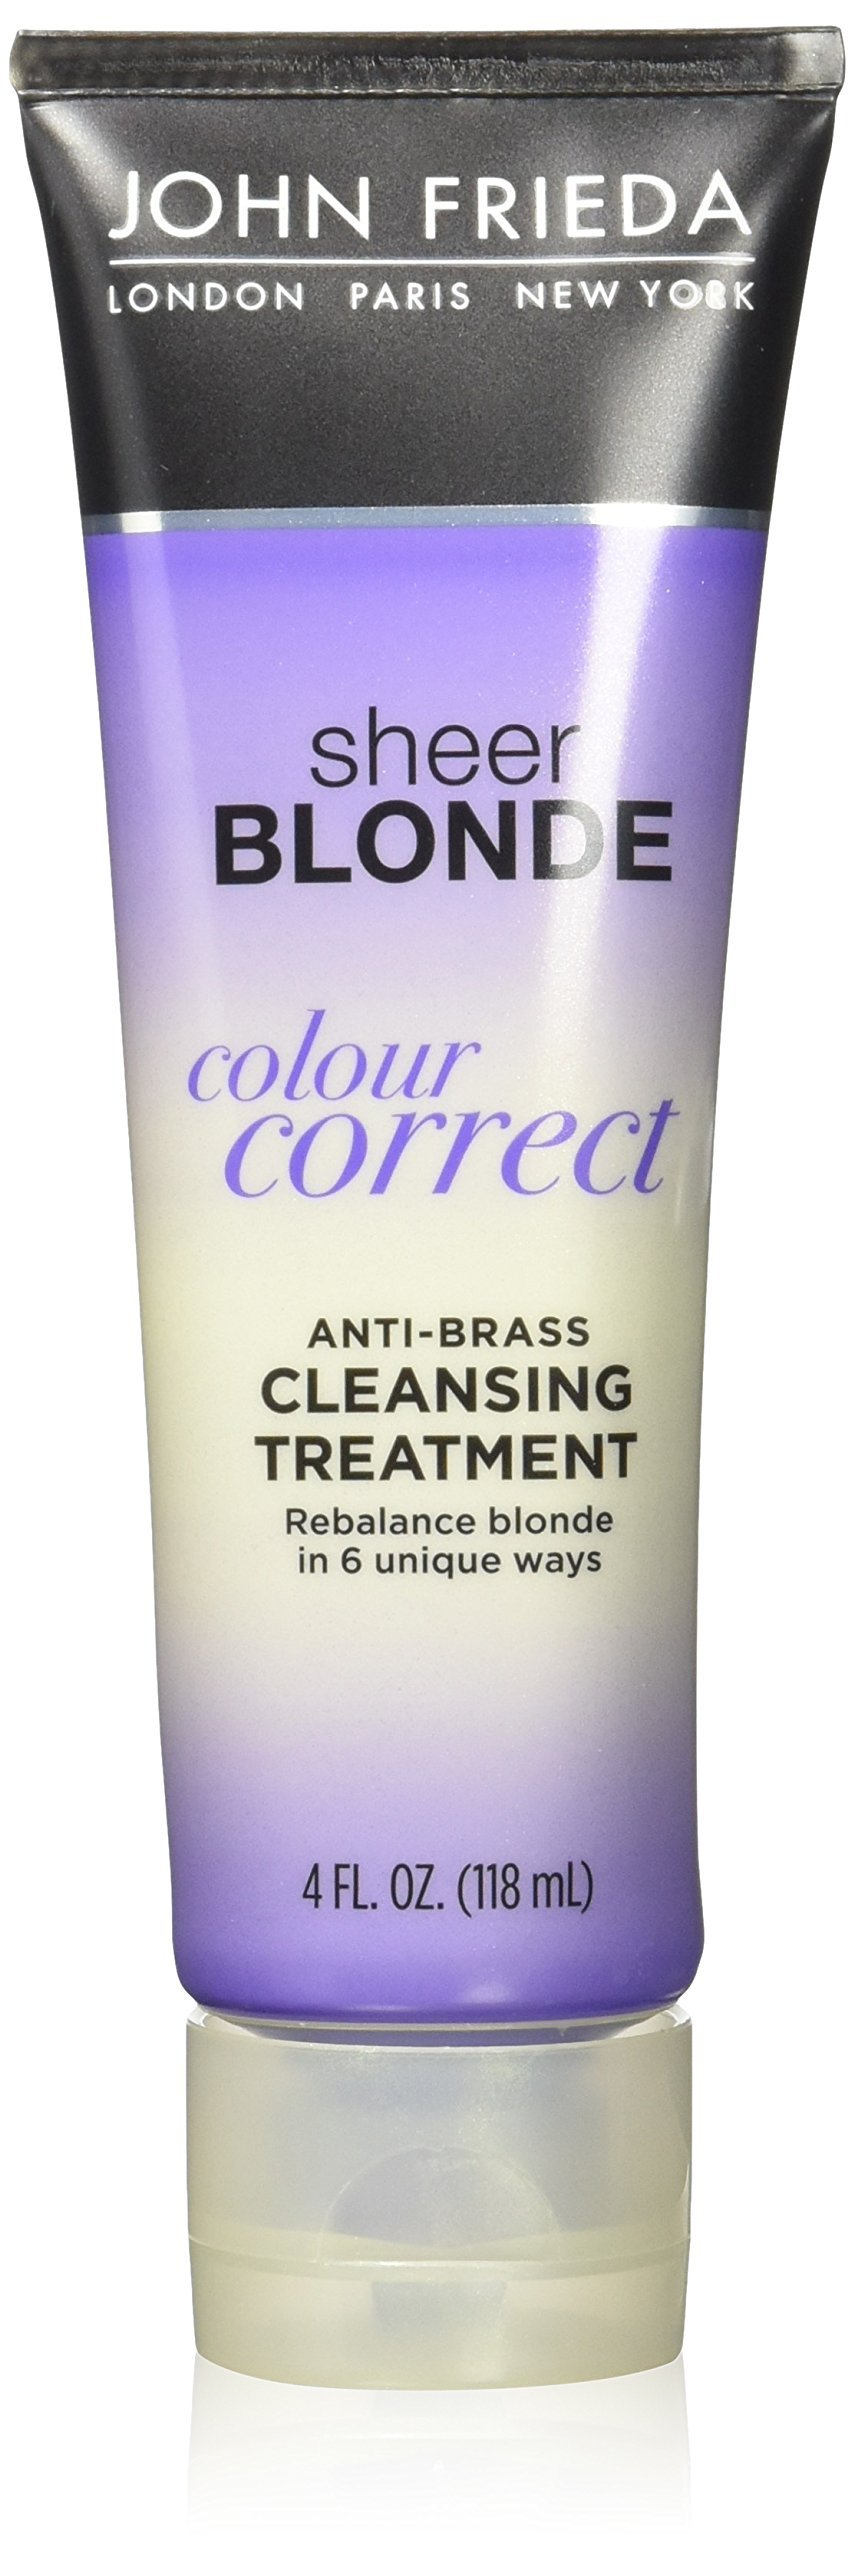 John Frieda Sheer Blonde Colour Correct Anti-Brass Cleansing Treatment, 4 Ounce